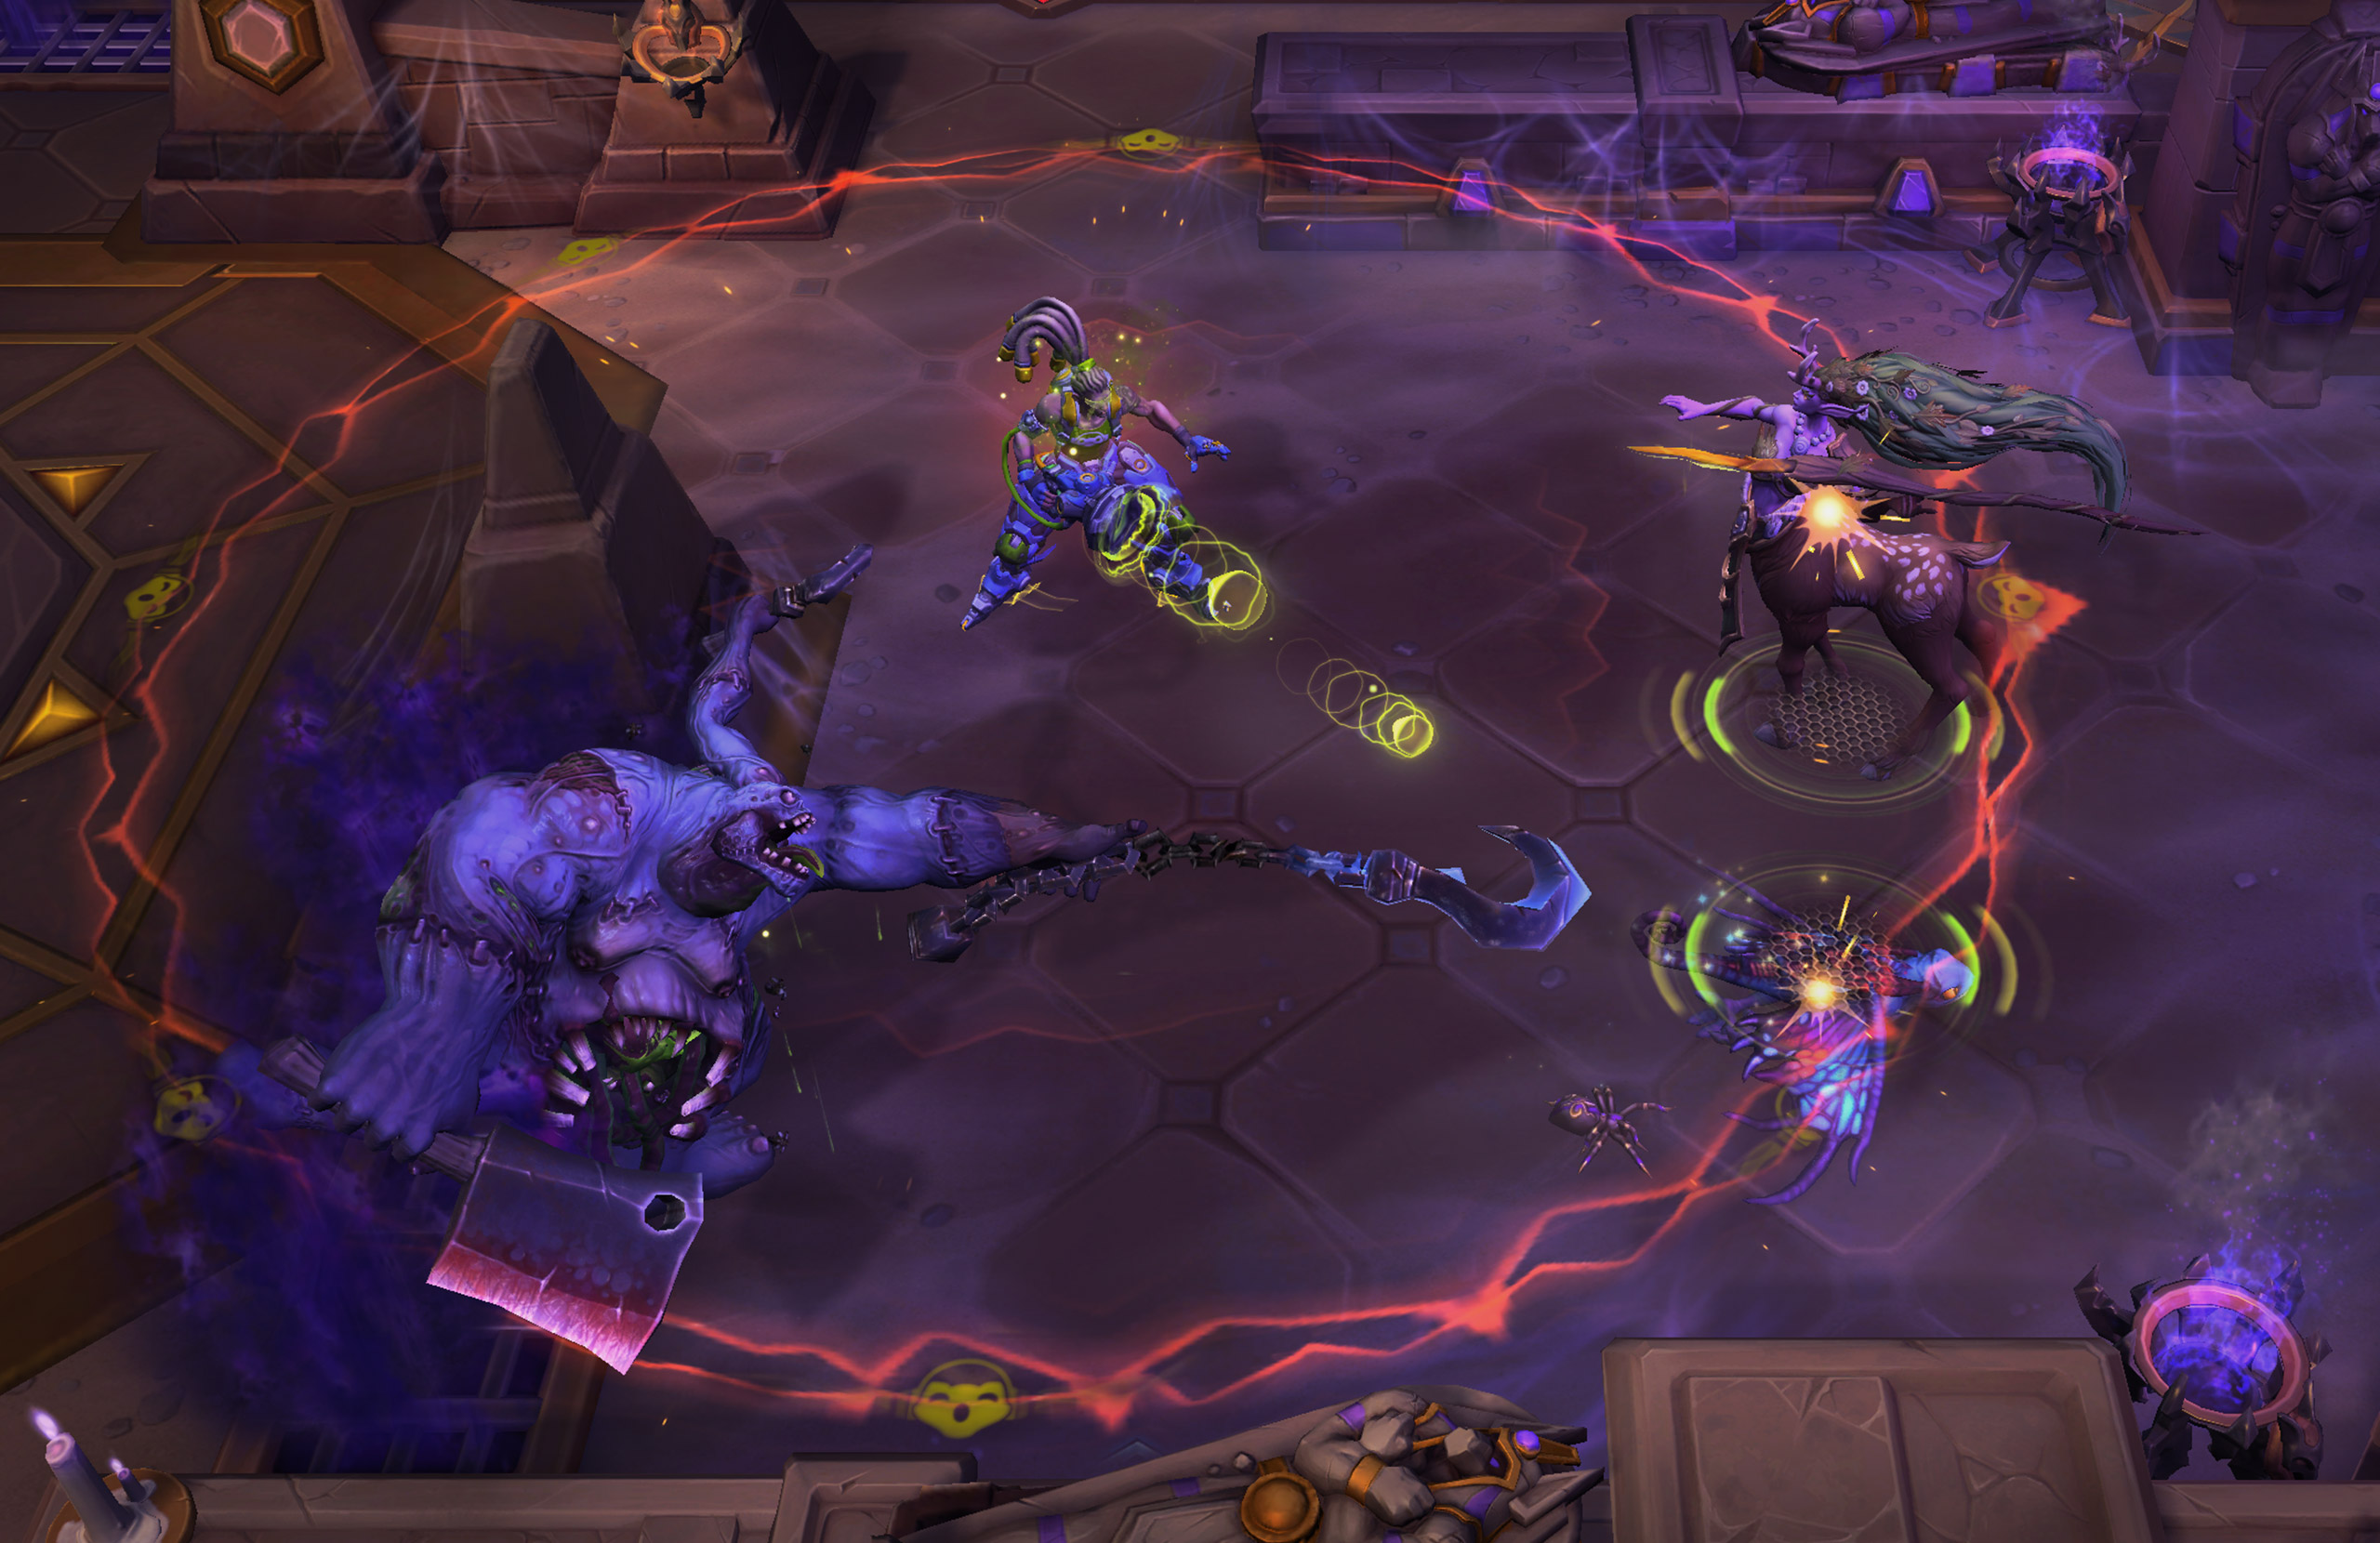 Heroes Of The Storm The Holistic Hero Rework Brett Crawford On Heroic Parity A Hero S Feel And More Inven Global Our site contains tons of hero builds, a talent calculator, charts, statistics, and much more! holistic hero rework brett crawford